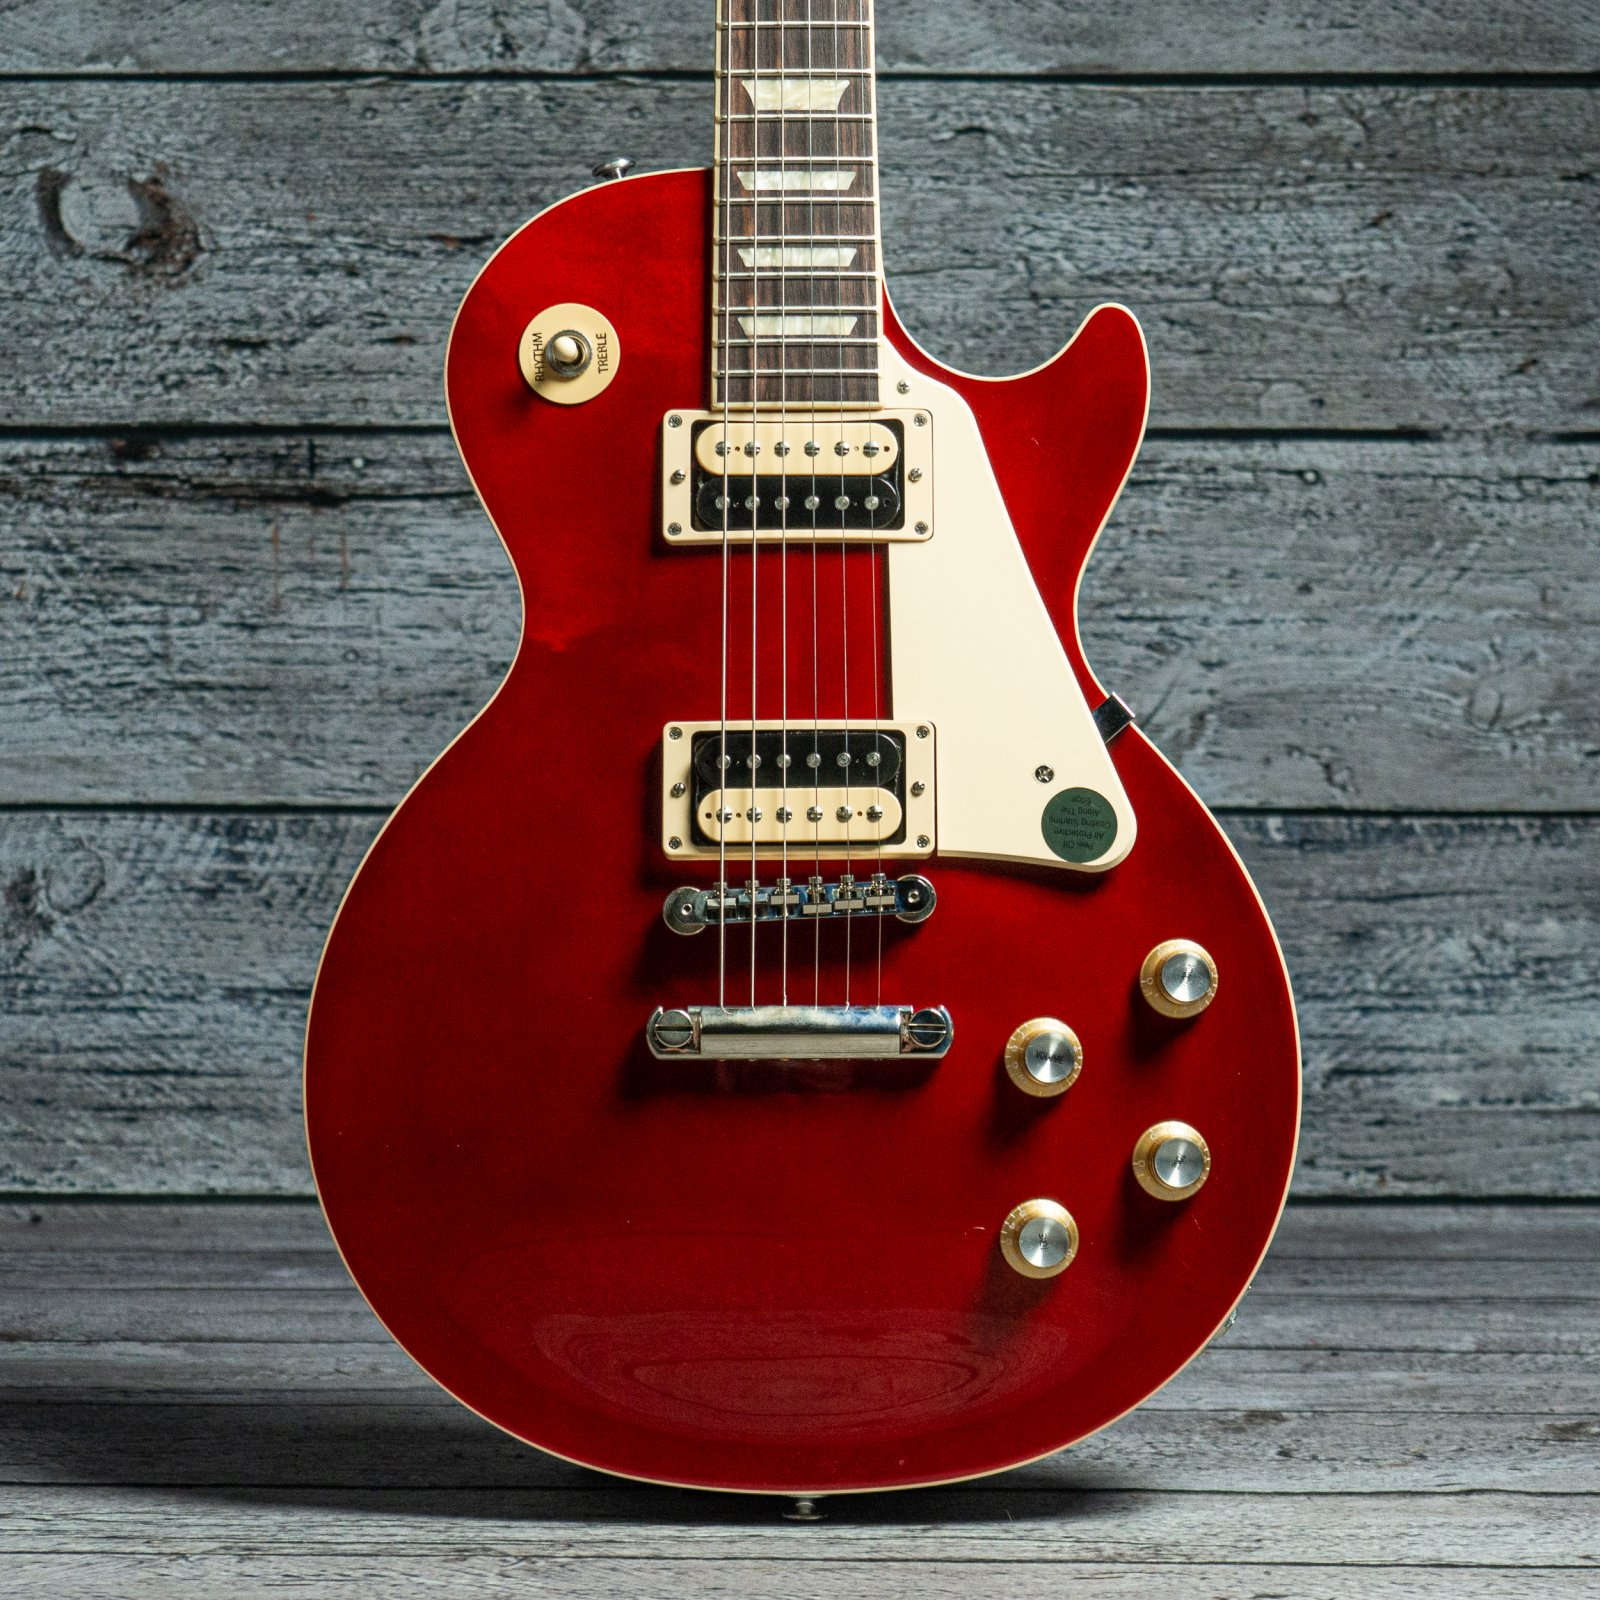 Gibson Les Paul Classic - Translucent Cherry (Serial: 204310146)